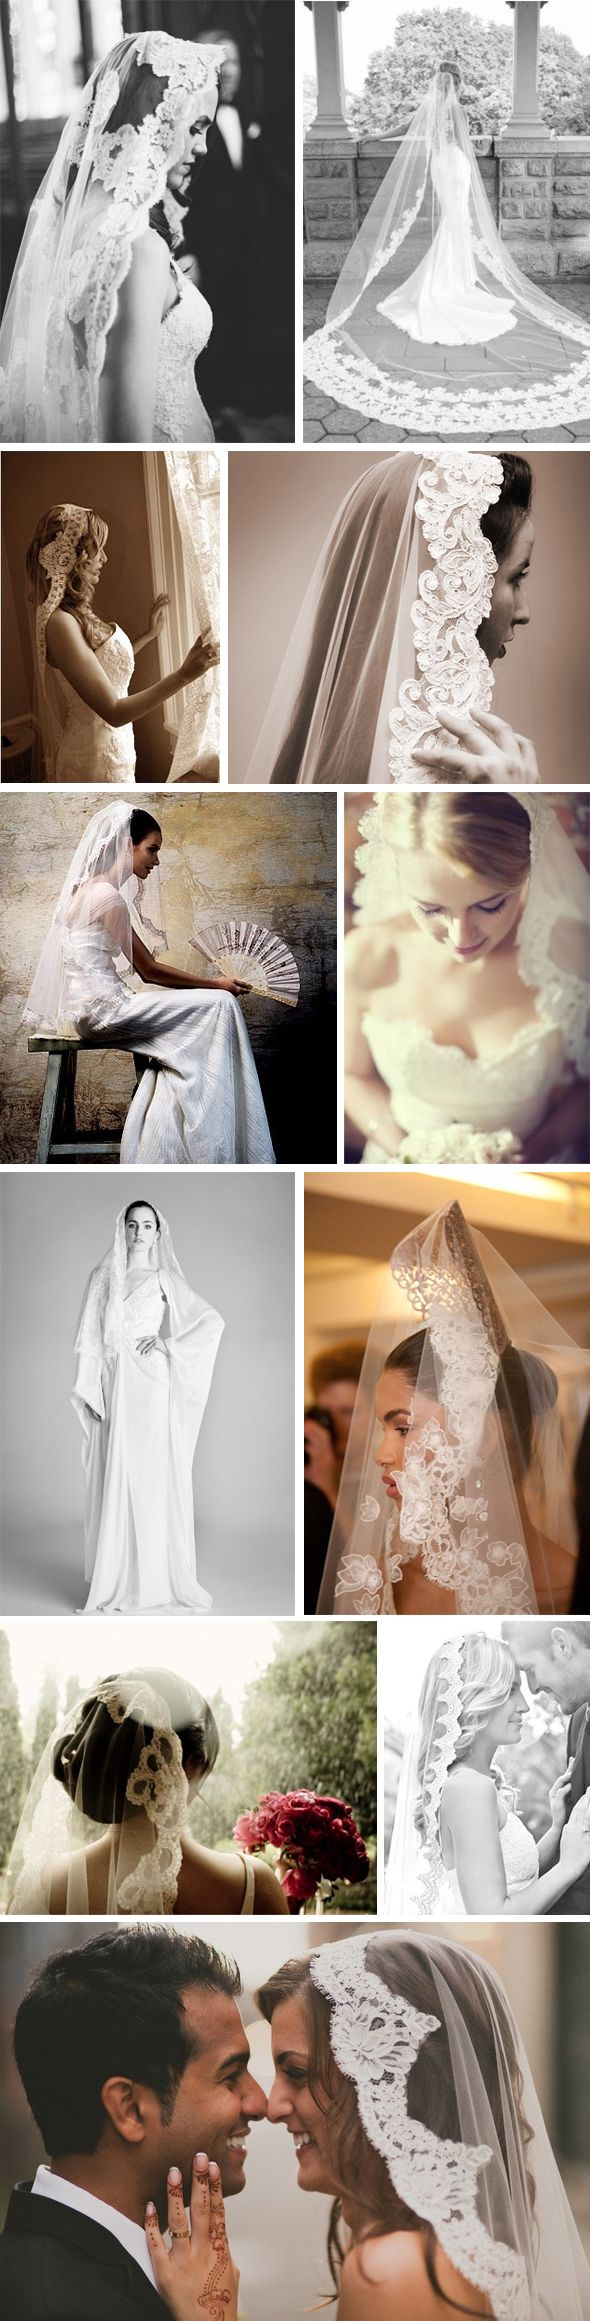 mantilla veils - absolutely beautiful. won't work for all brides and dresses but still beautiful!